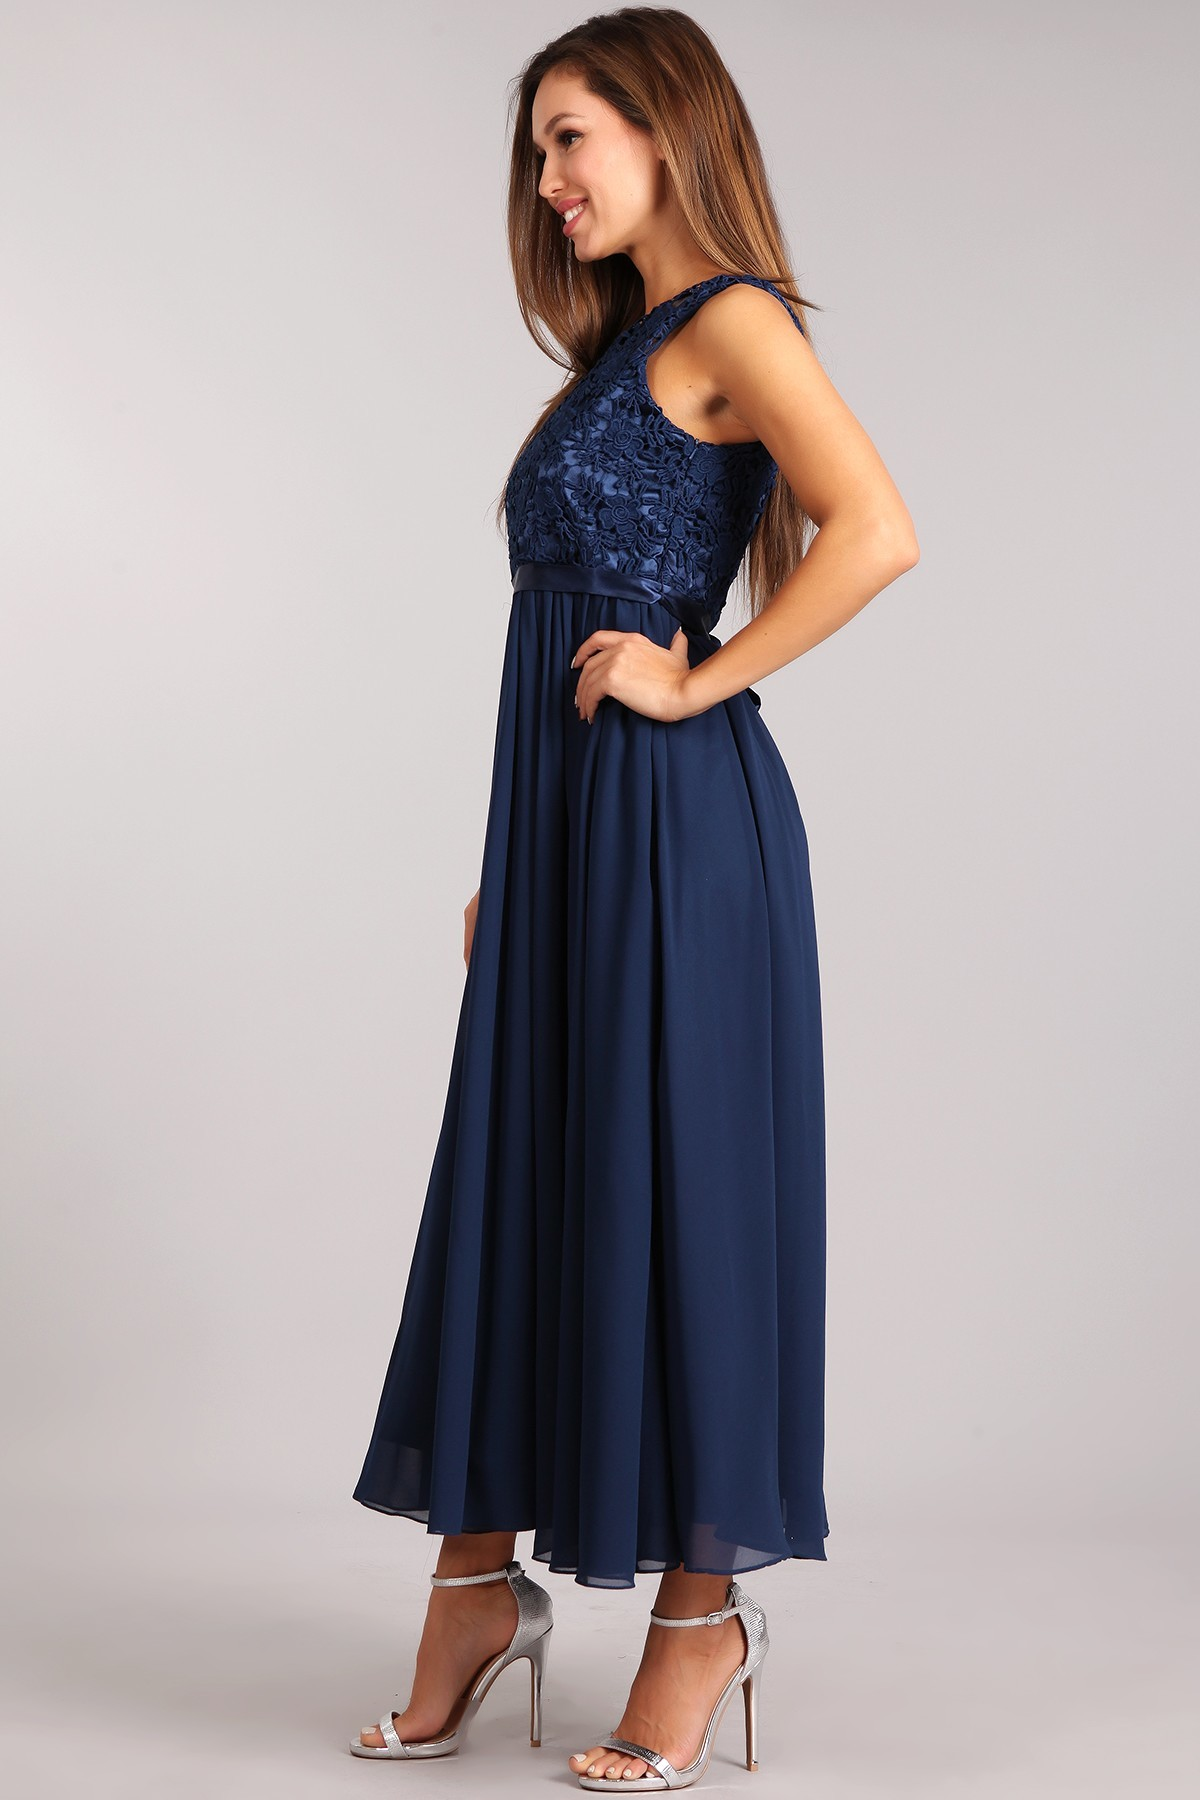 navy blue maxi dress casual